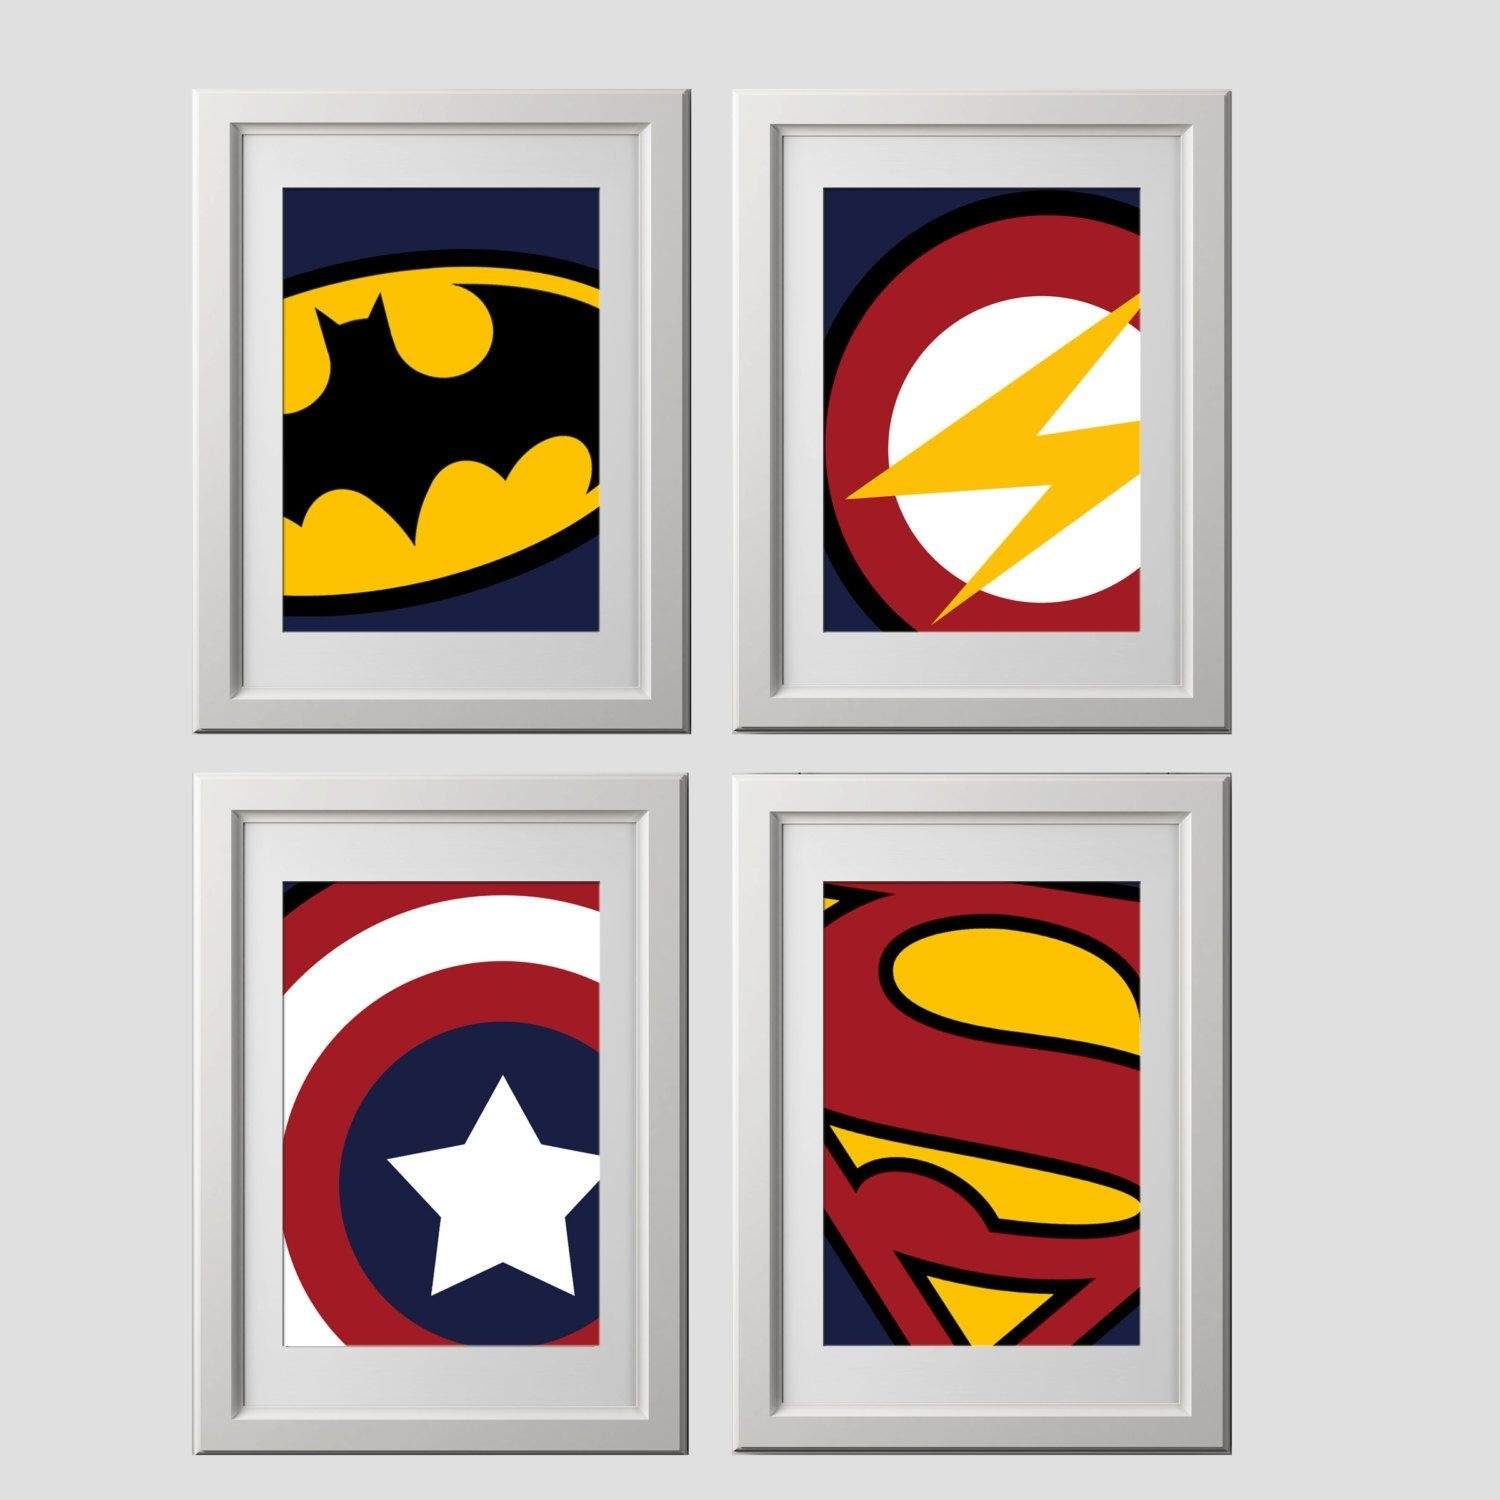 Superhero Wall Art Prints, Super Hero Wall Art Prints, High Quality Within Latest Superhero Wall Art (Gallery 4 of 20)